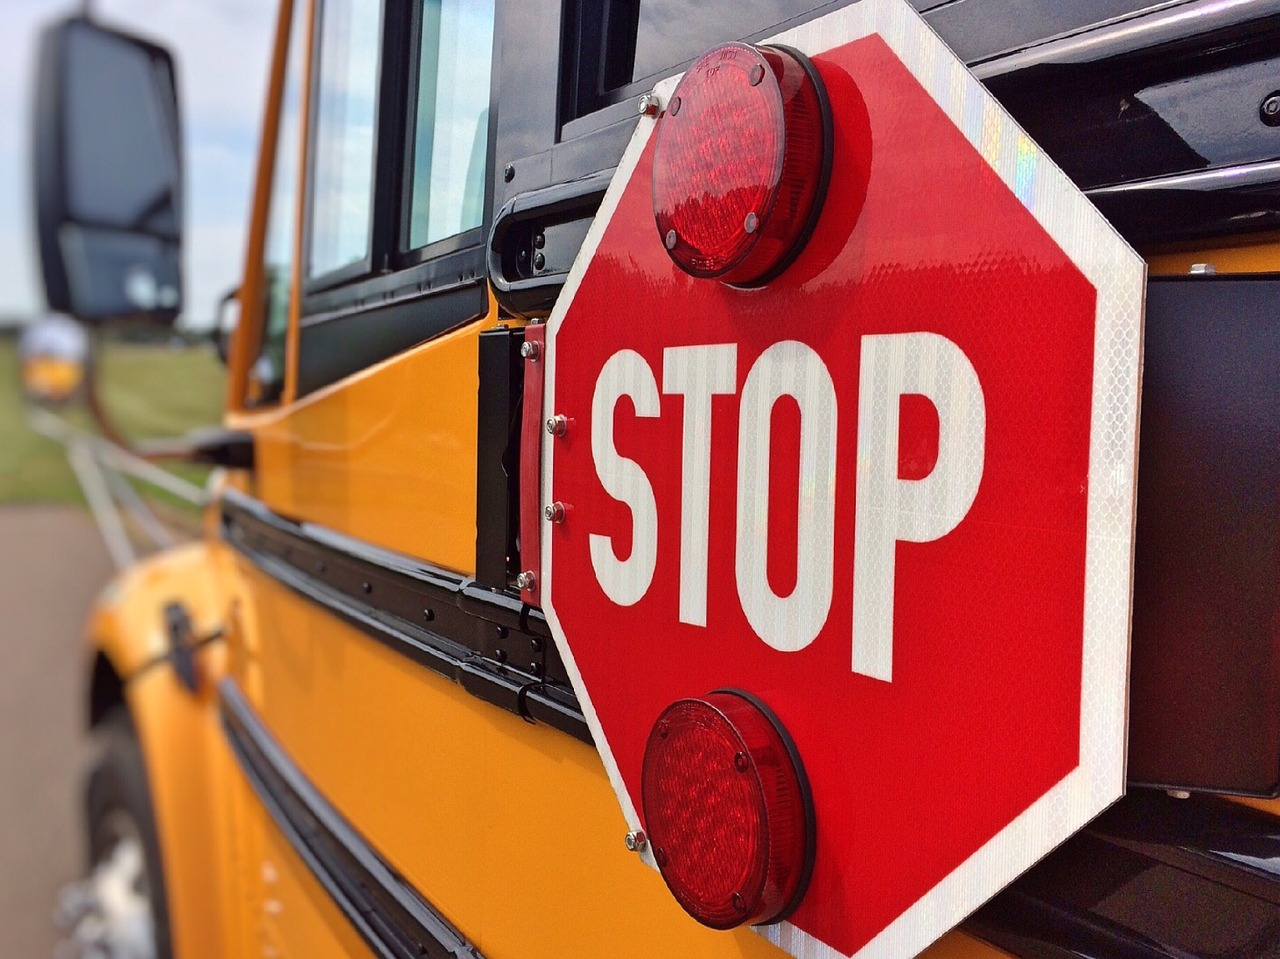 Latest Bus News - Accidents and Crashes of School Buses